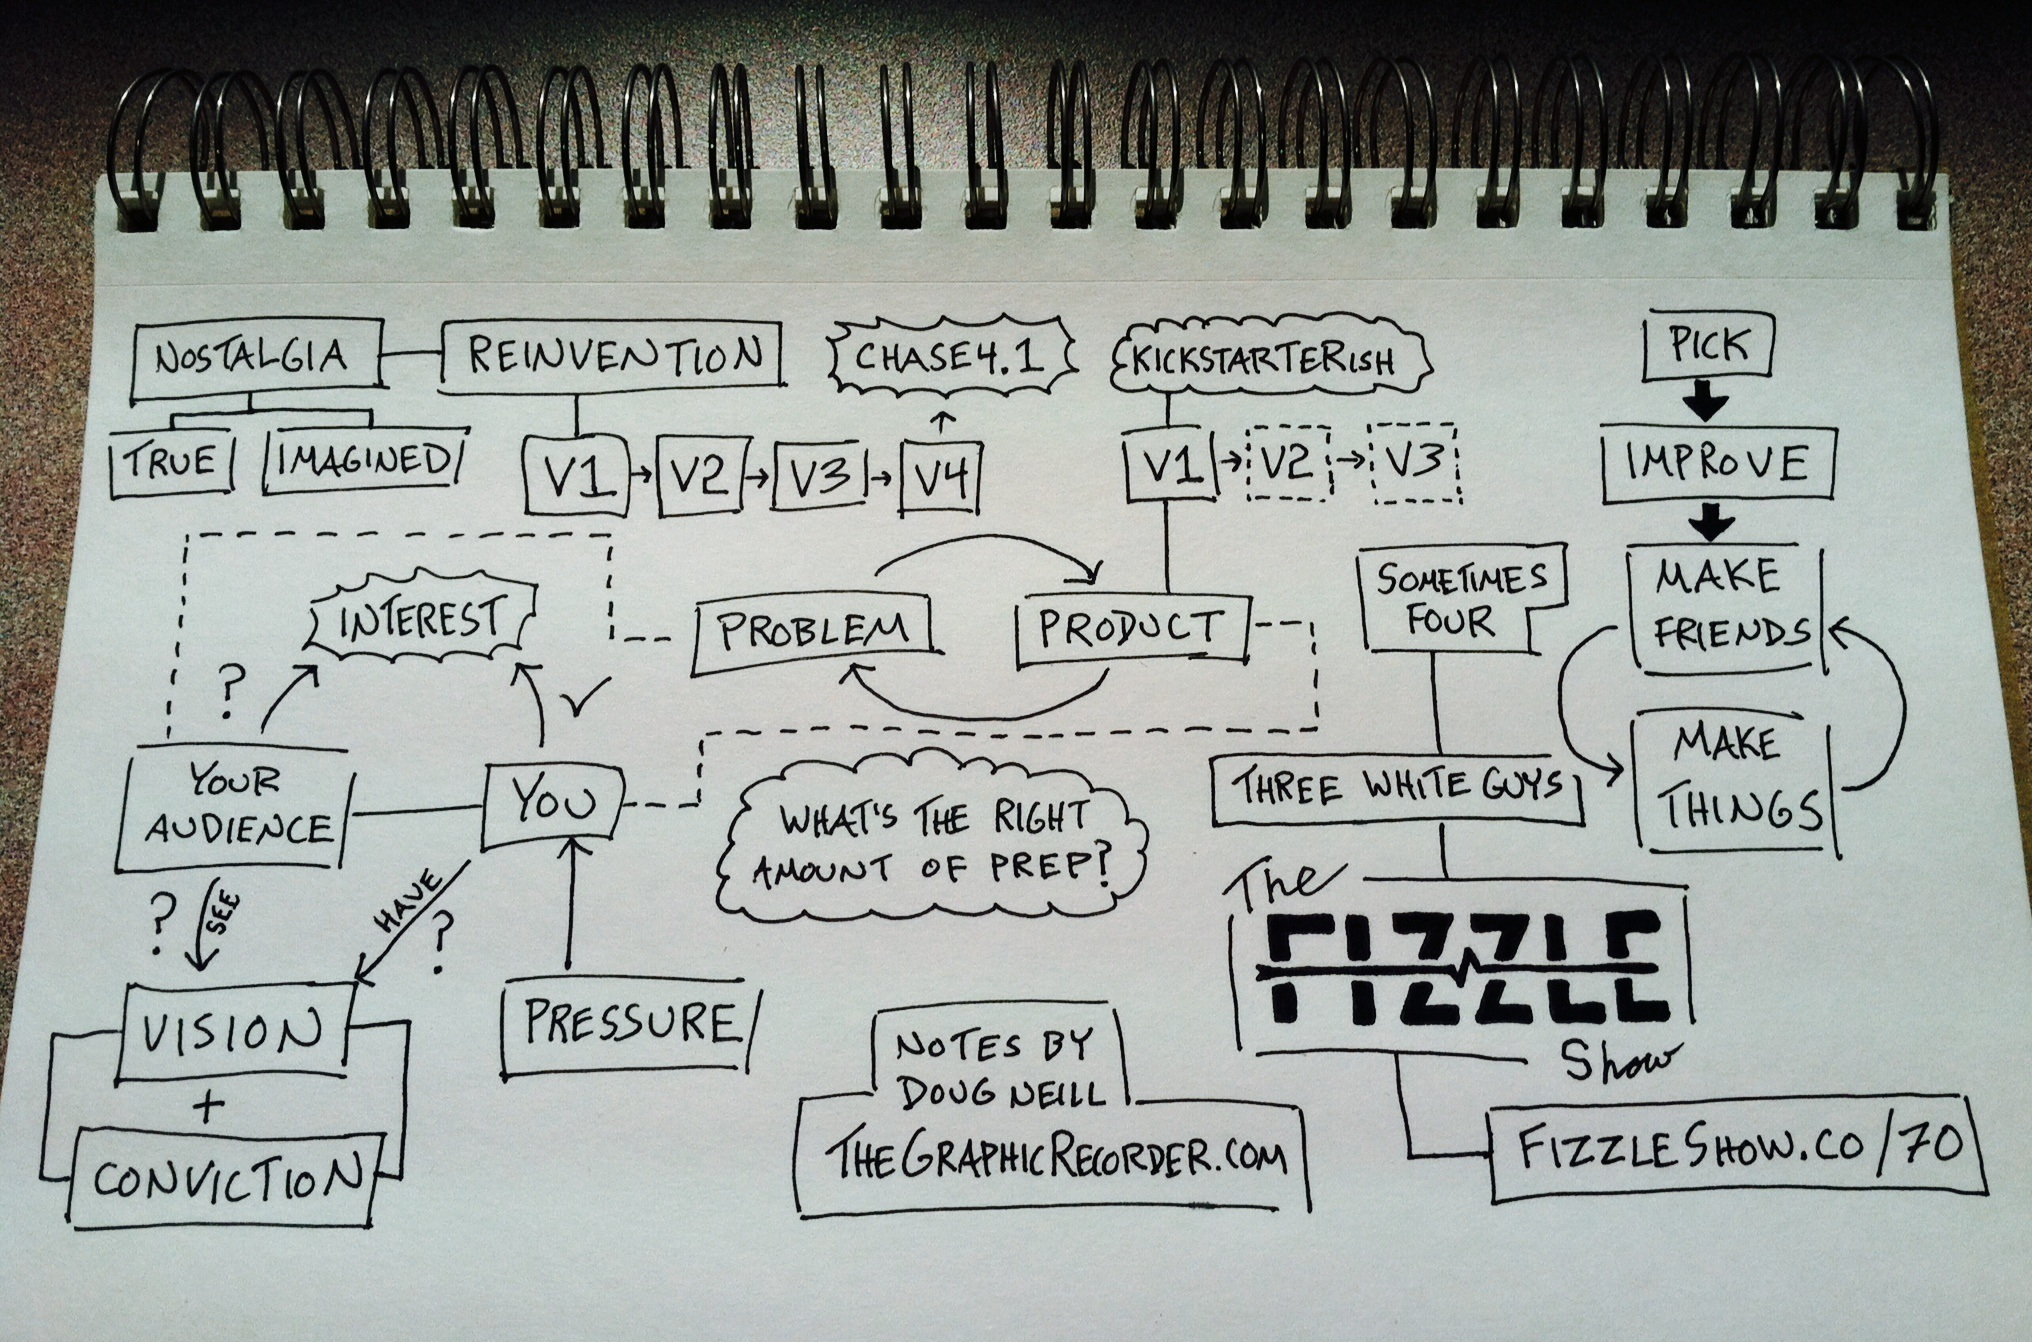 The Fizzle Show Episode 70 Sketchnotes - Doug Neill - The Graphic Recorder - launch prep, problem, product, audience, vision, conviction, pressure, nostalgia, reinvention